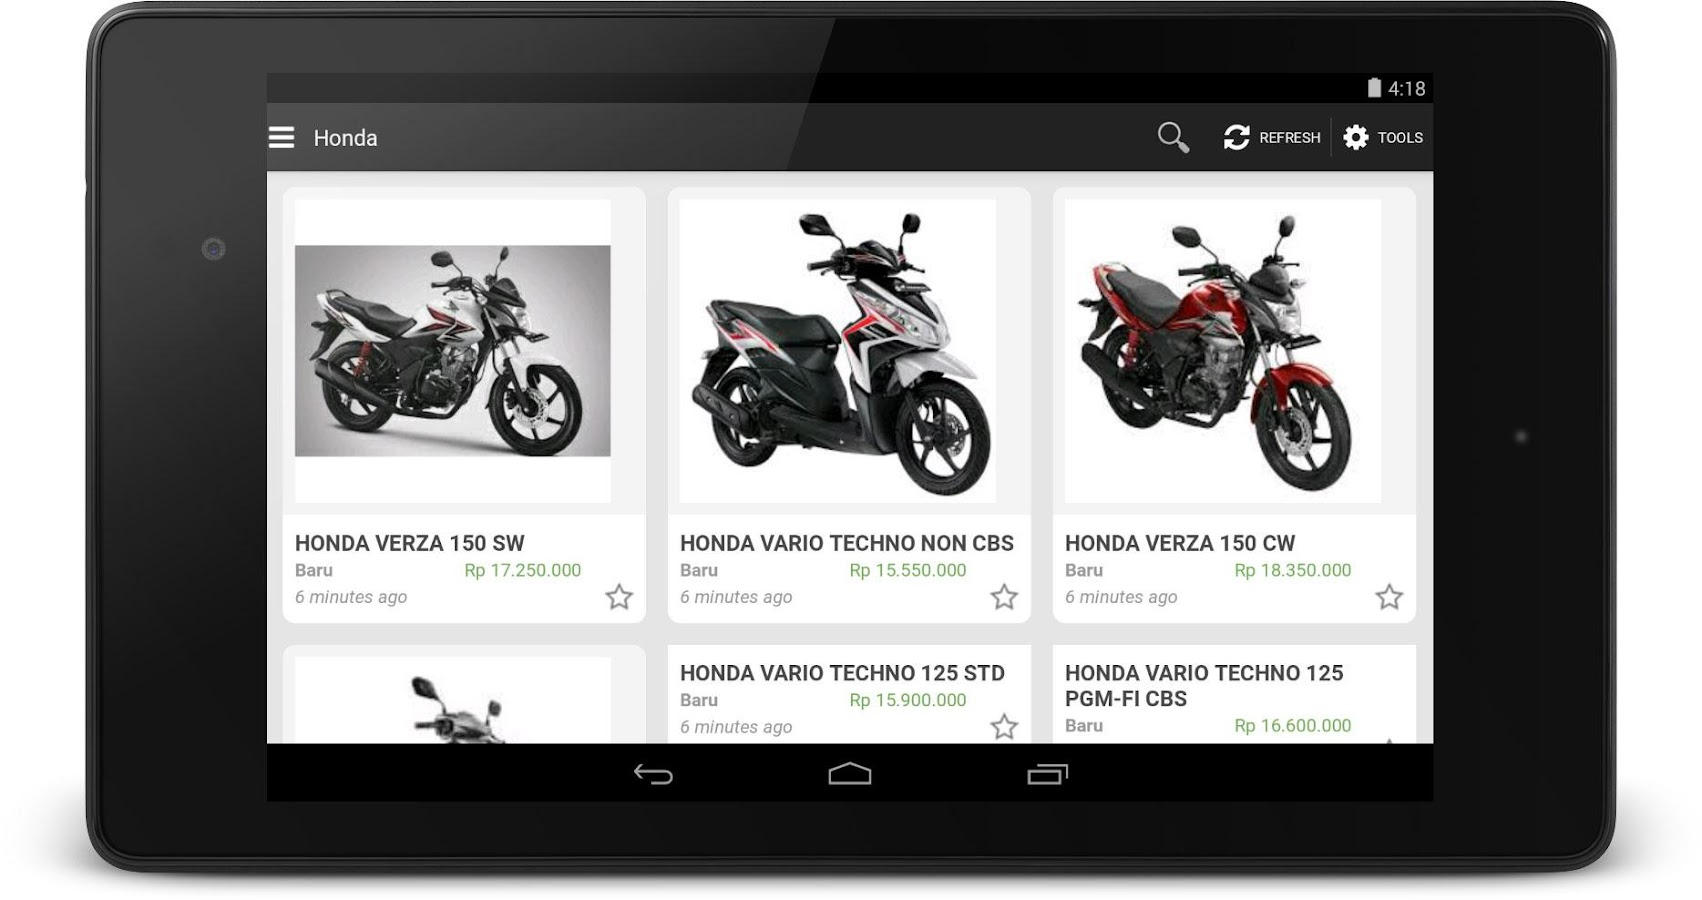 60 Harga Modifikasi Motor Honda Verza Terbaru Daun All New Beat Sporty Esp Cbs Garage Black Brebes Google Play Android